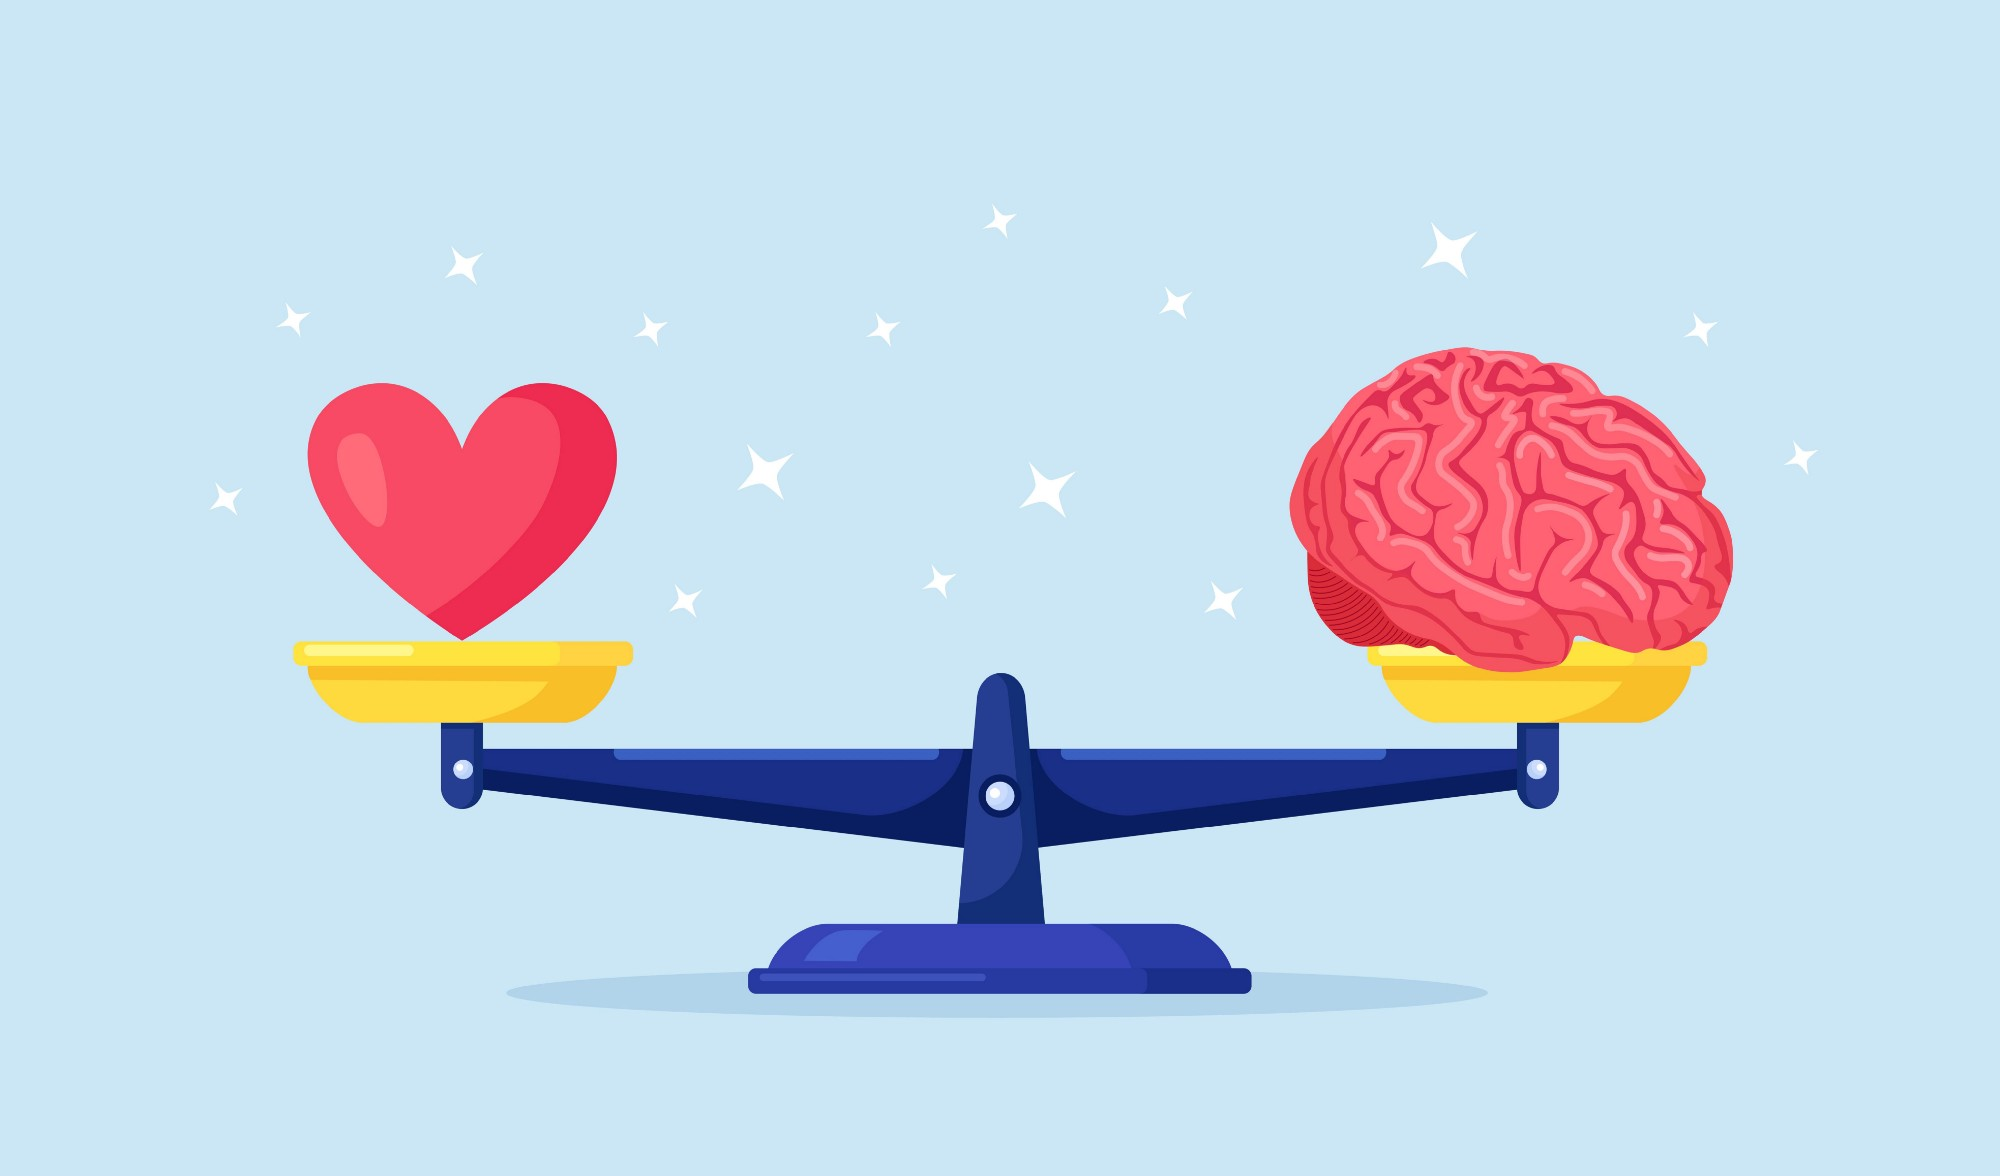 Balance between heart, emotions, love and intelligence, brain, logic on scales. choosing between feelings and mind, career or hobby, love or work. making life decision. emotional balance